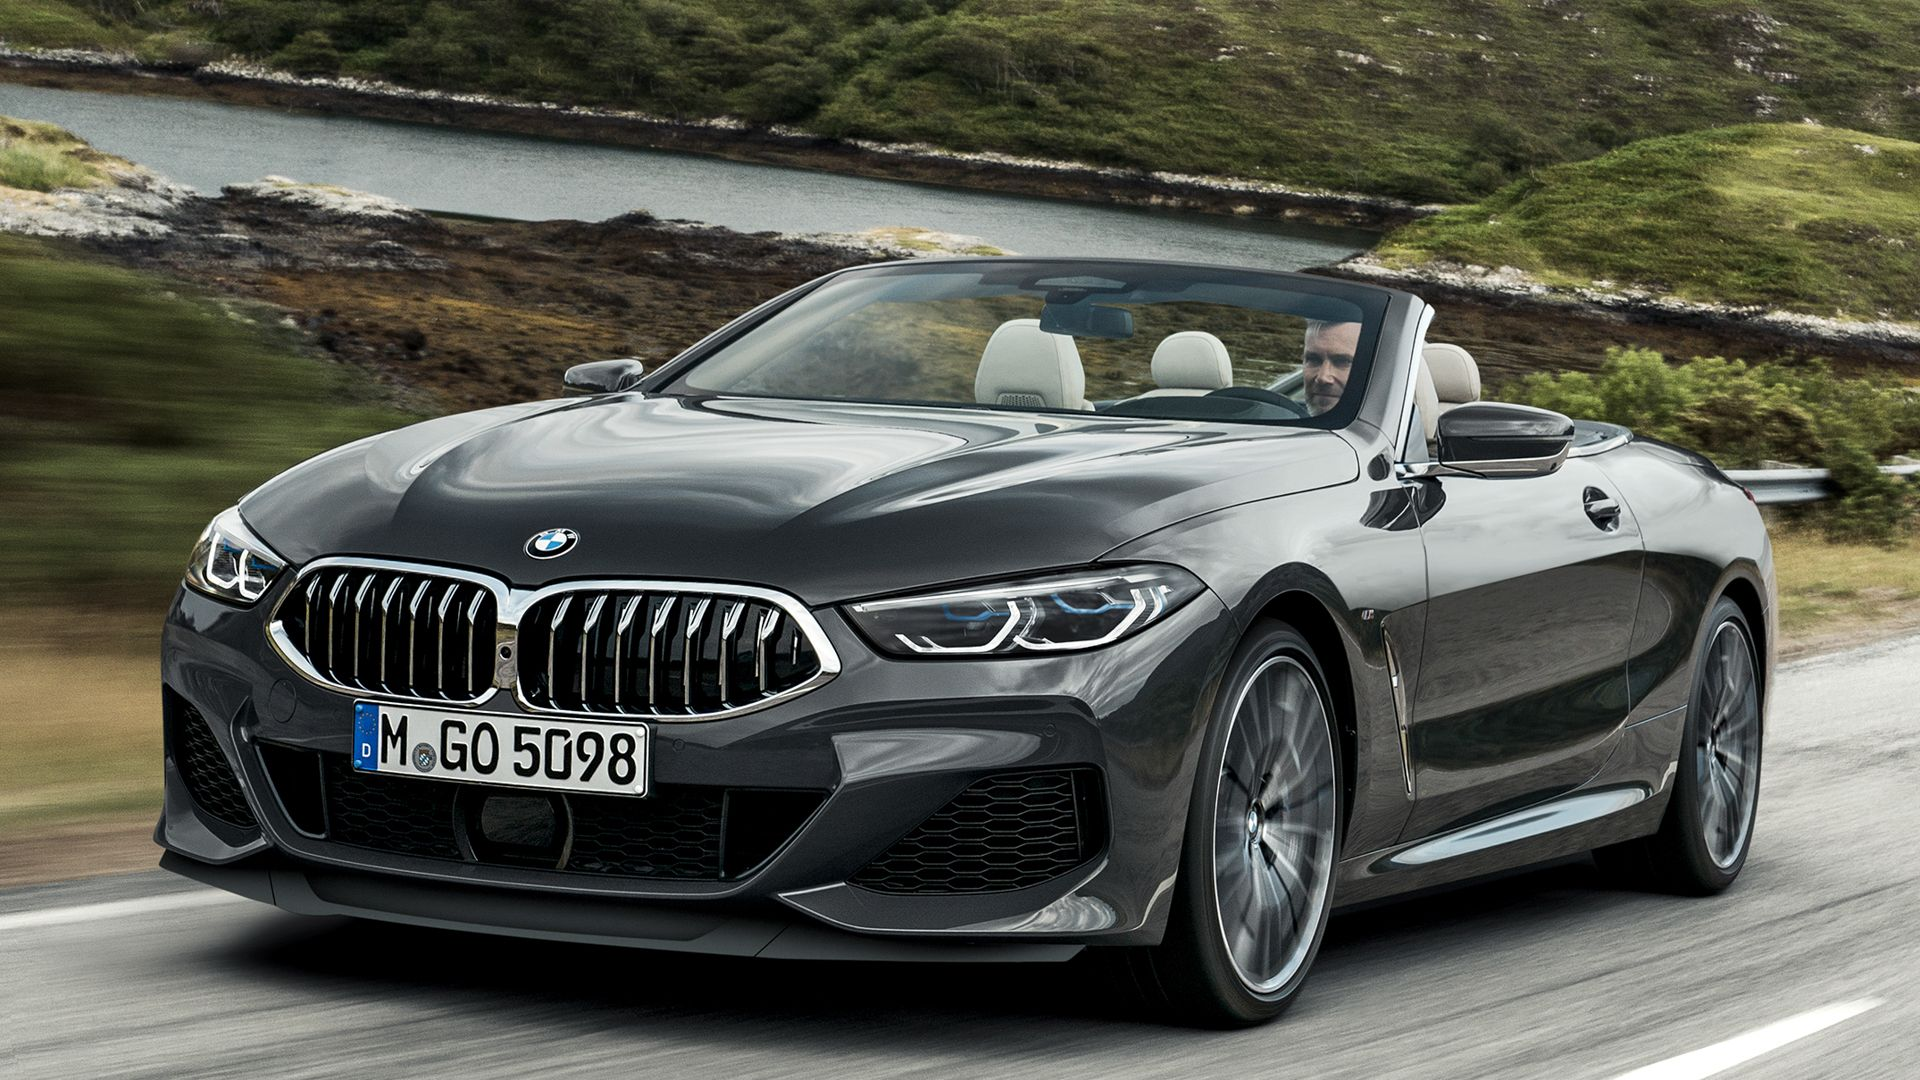 Photo Comparison Bmw 8 Series Convertible Vs Aston Martin Db11